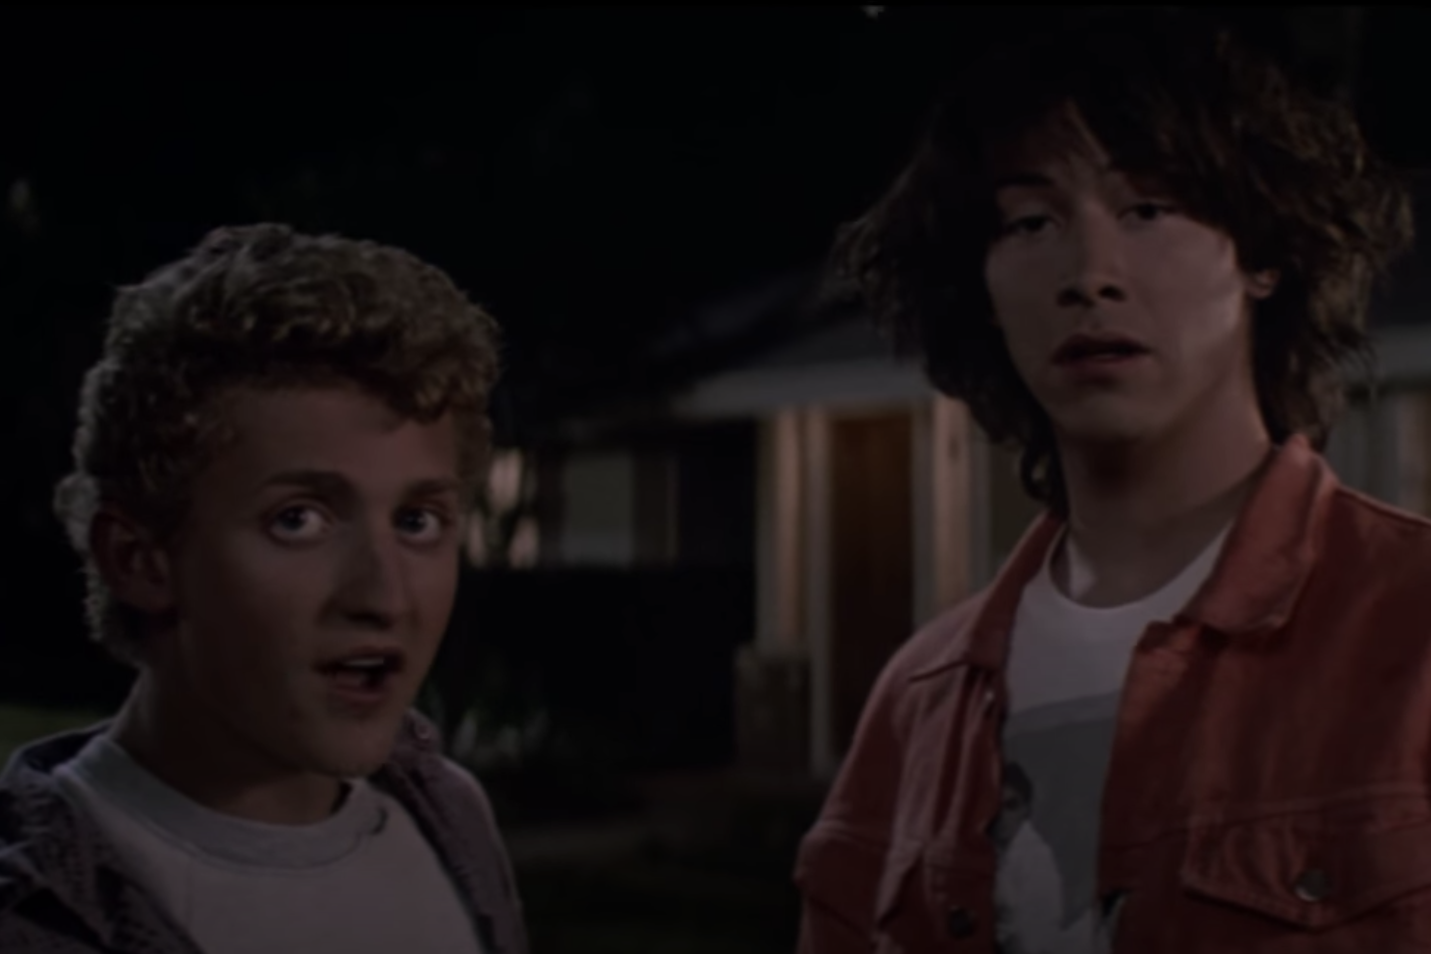 'Bill & Ted' co-writer disputes claim that sequel will be 'woke piece of trash' due to two female characters thumbnail